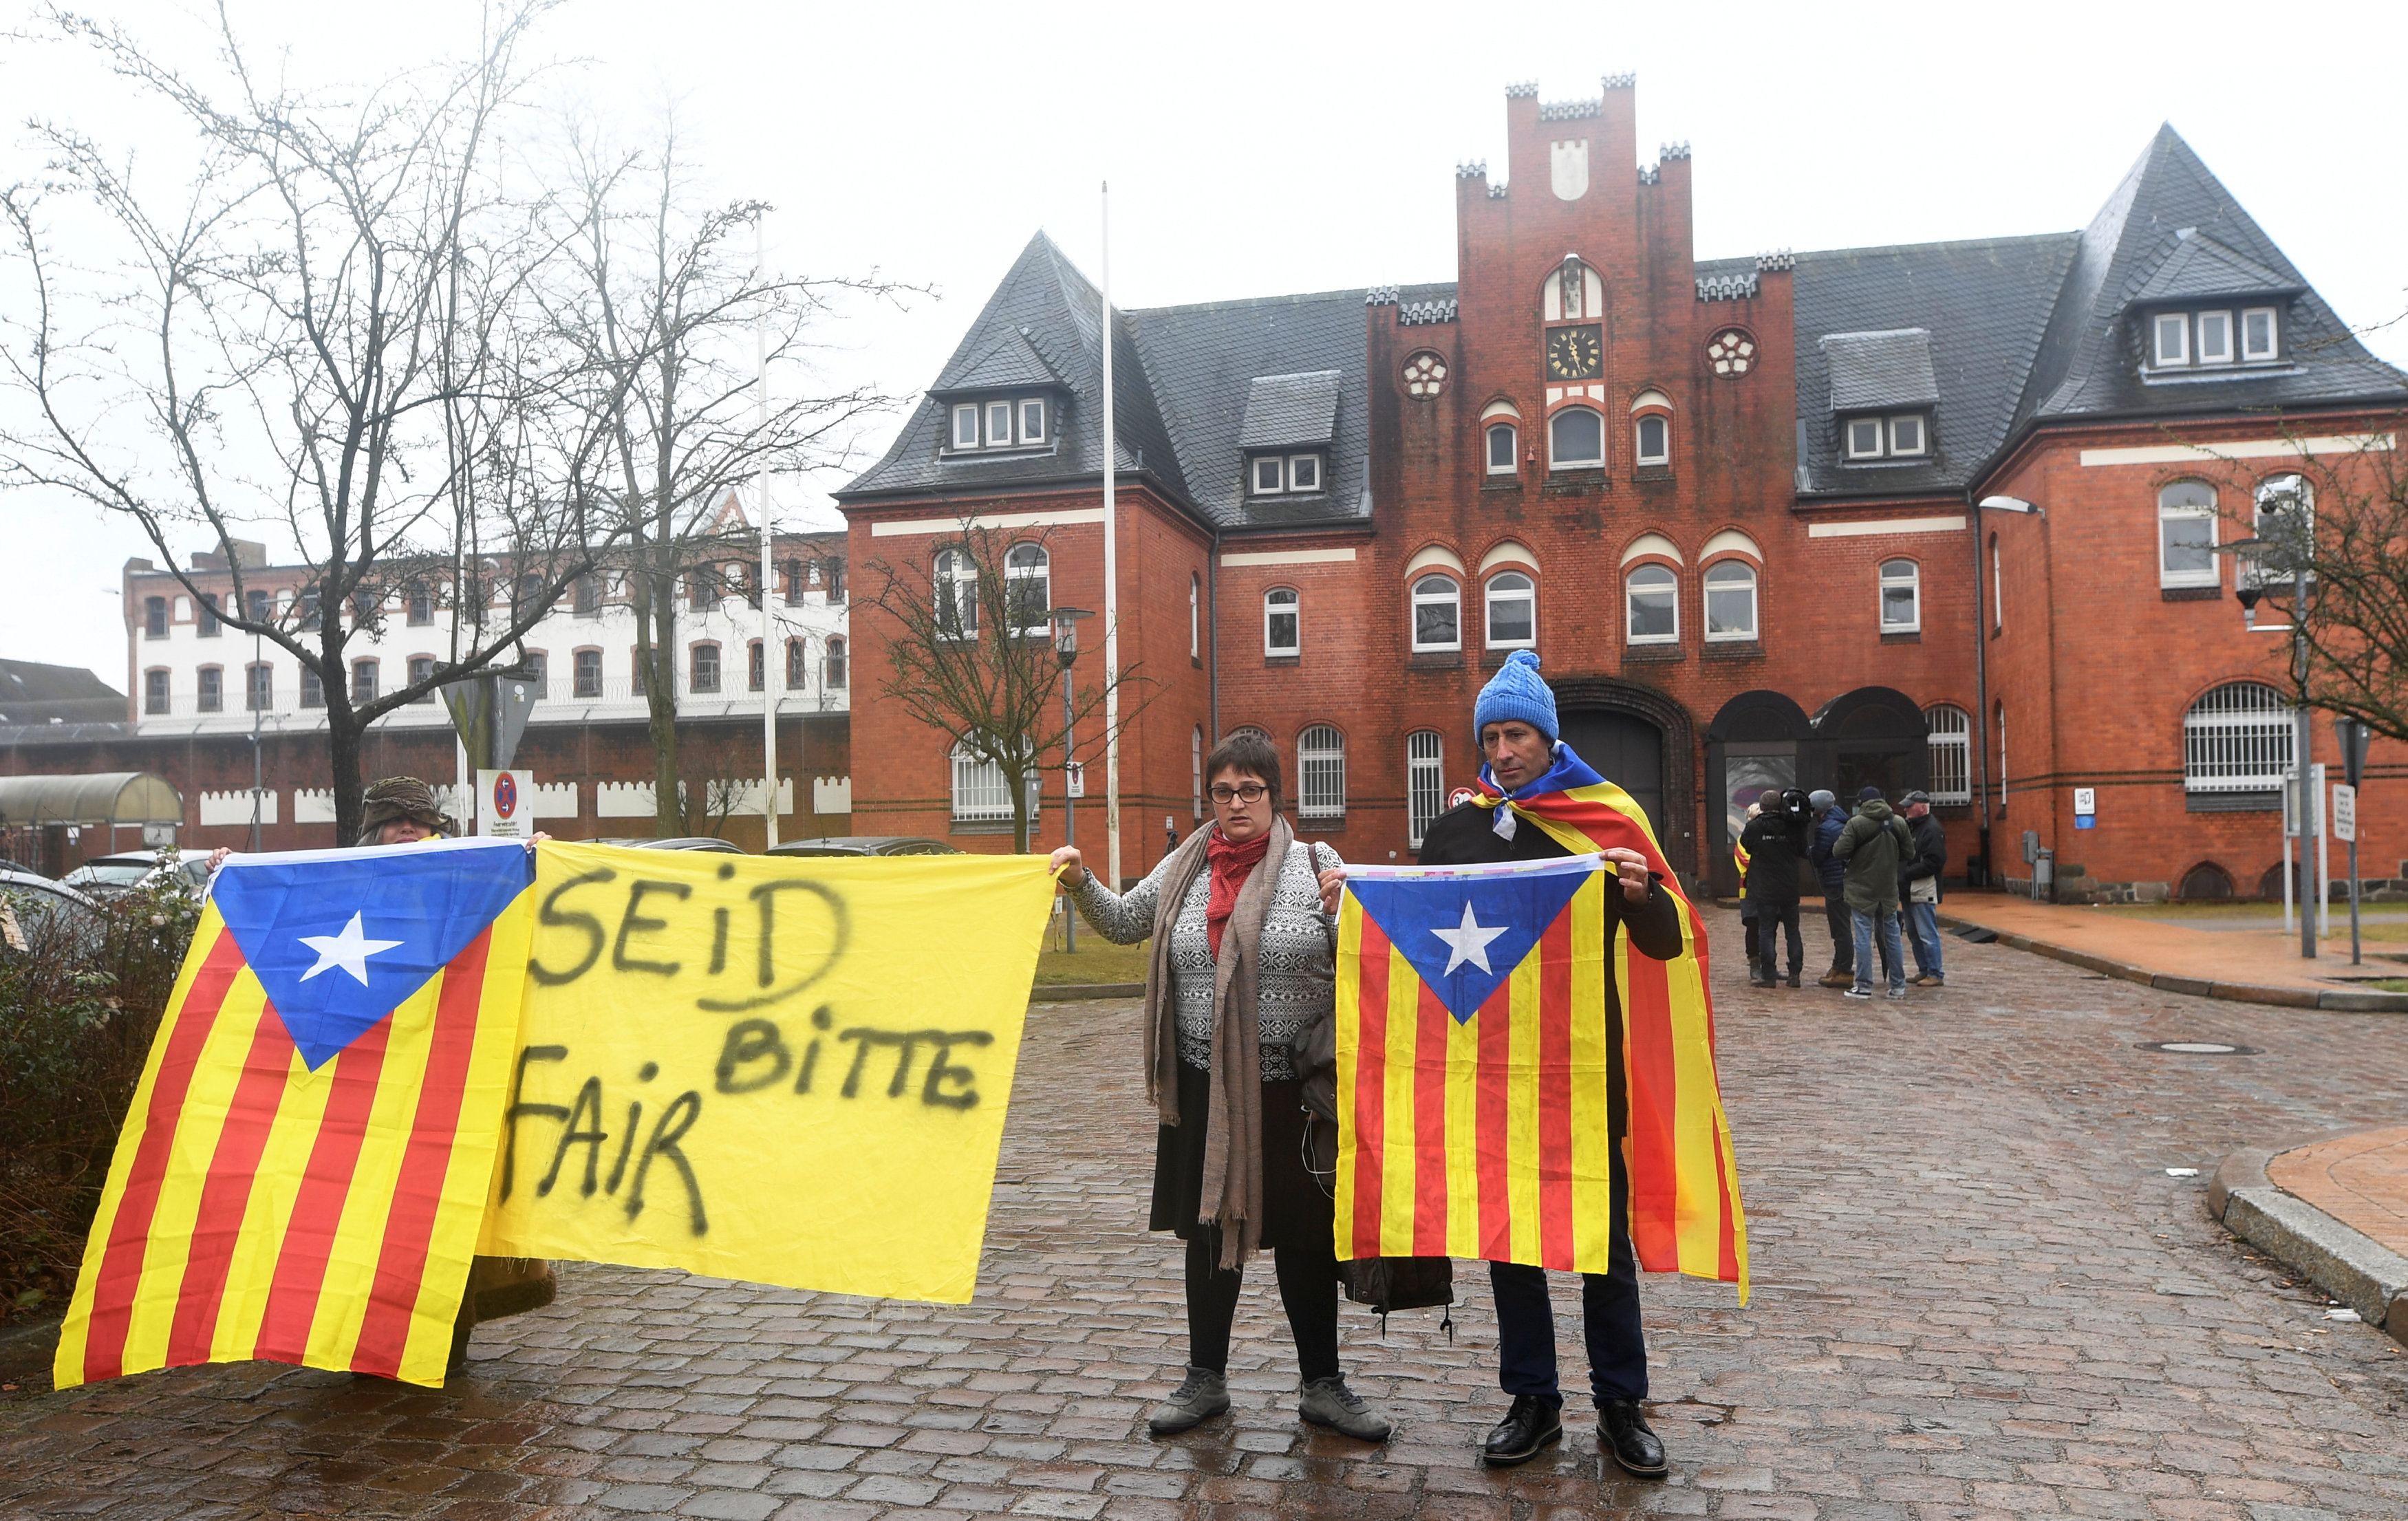 """People hold a poster and Estelada (Catalan separatist flag) in protest to support the release of former Catalan regional president Carles Puigdemont in front of the prison in Neumuenster, Germany, April 3, 2018.  The poster reads """"Be fair please""""    REUTERS/Fabian Bimmer"""